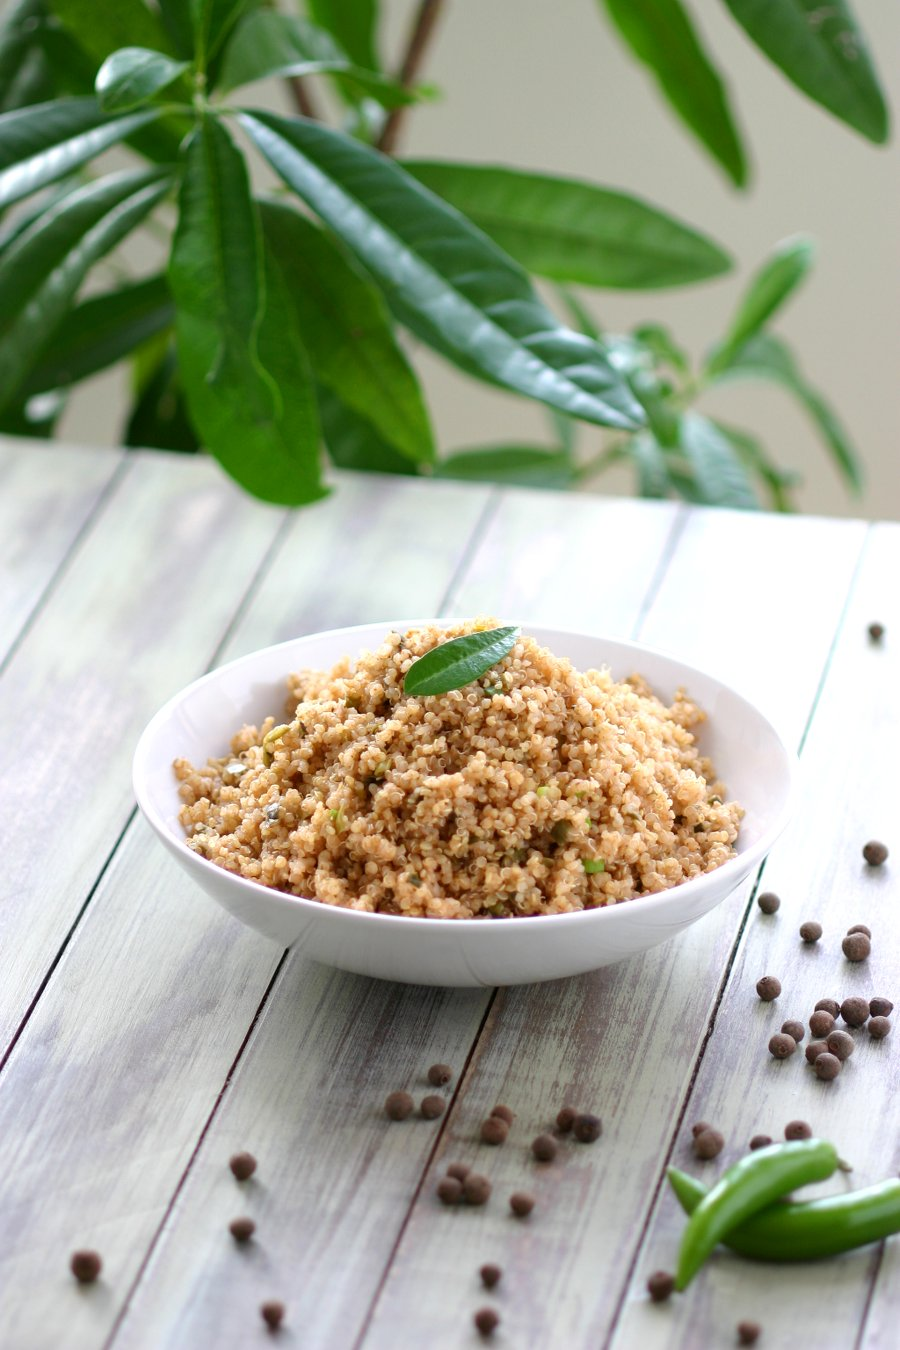 This Jamaican Jerk Quinoa combines chiles, allspice, nutmeg, cloves, and ginger for that spicy Jamaican taste. Great for making quinoa bowls, too!